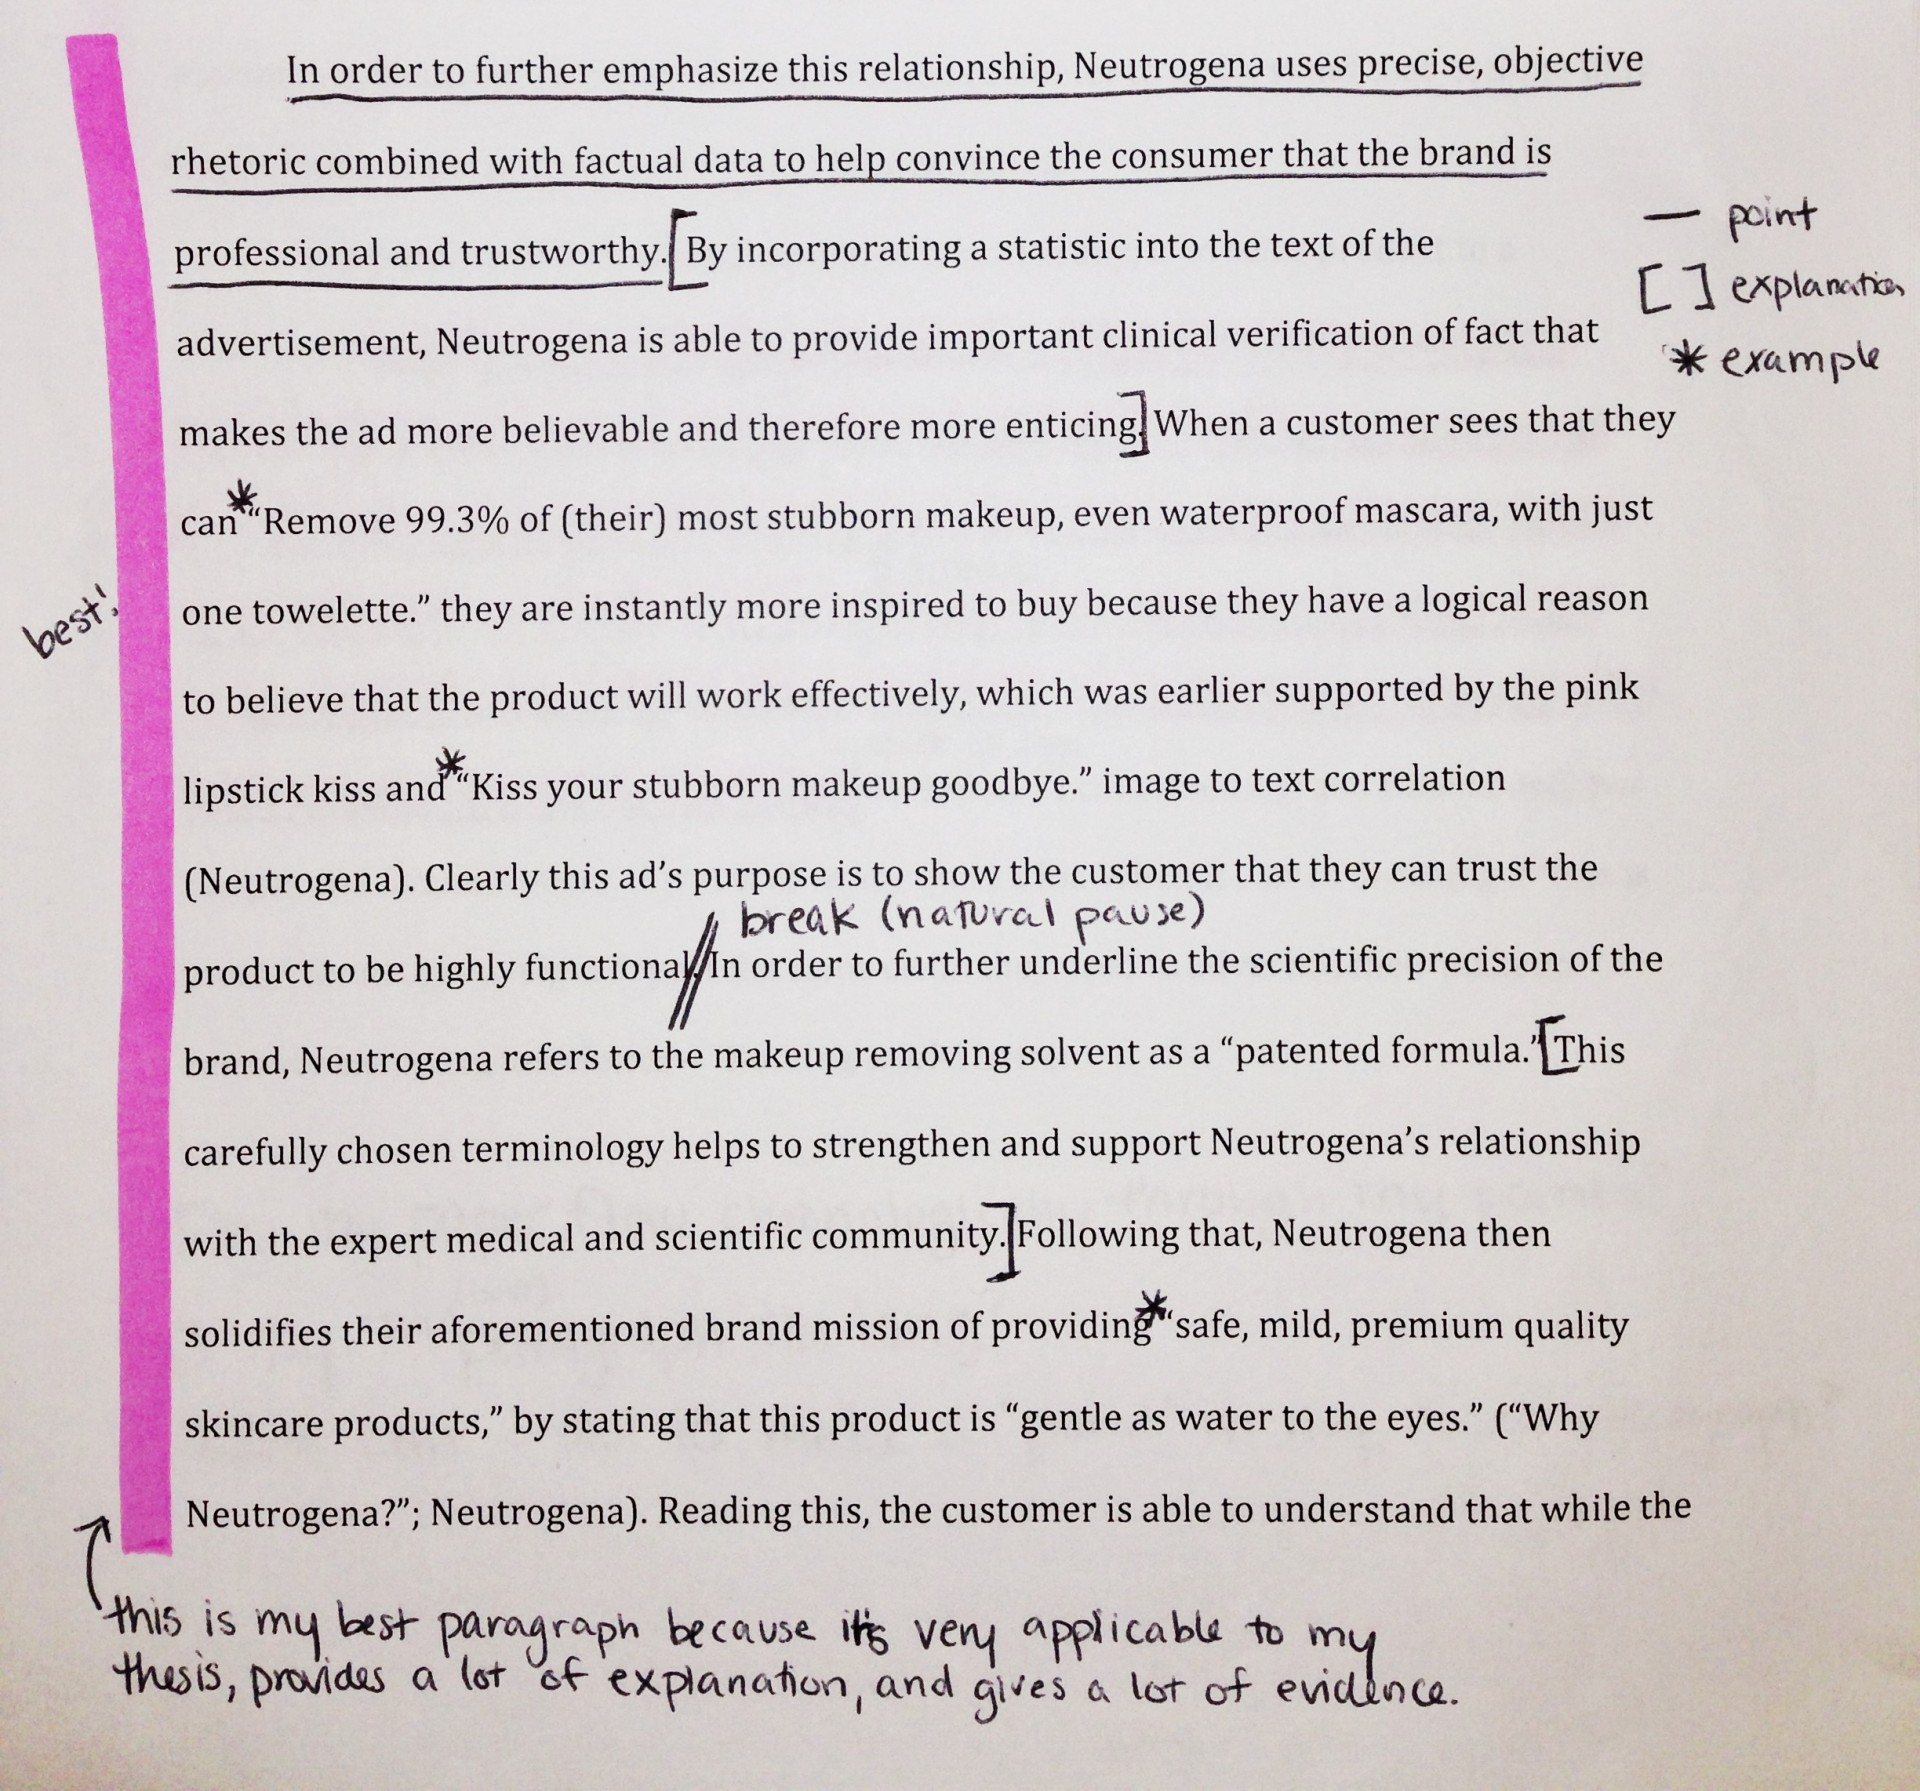 003 Research Paper Conclusion Example For Distinguished Esl Rhetorical Analysis Essay Writing Site Phd Of Paragraph Awesome Pdf 1920